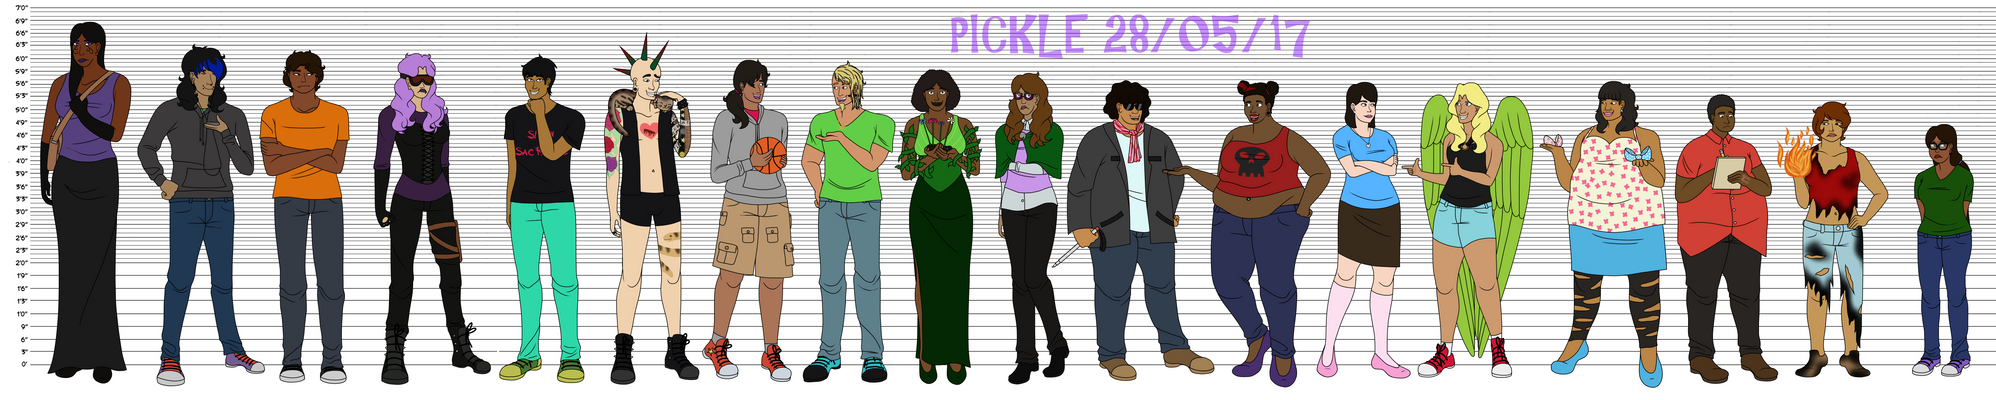 OC Height Chart 2017 by PicklePieCow